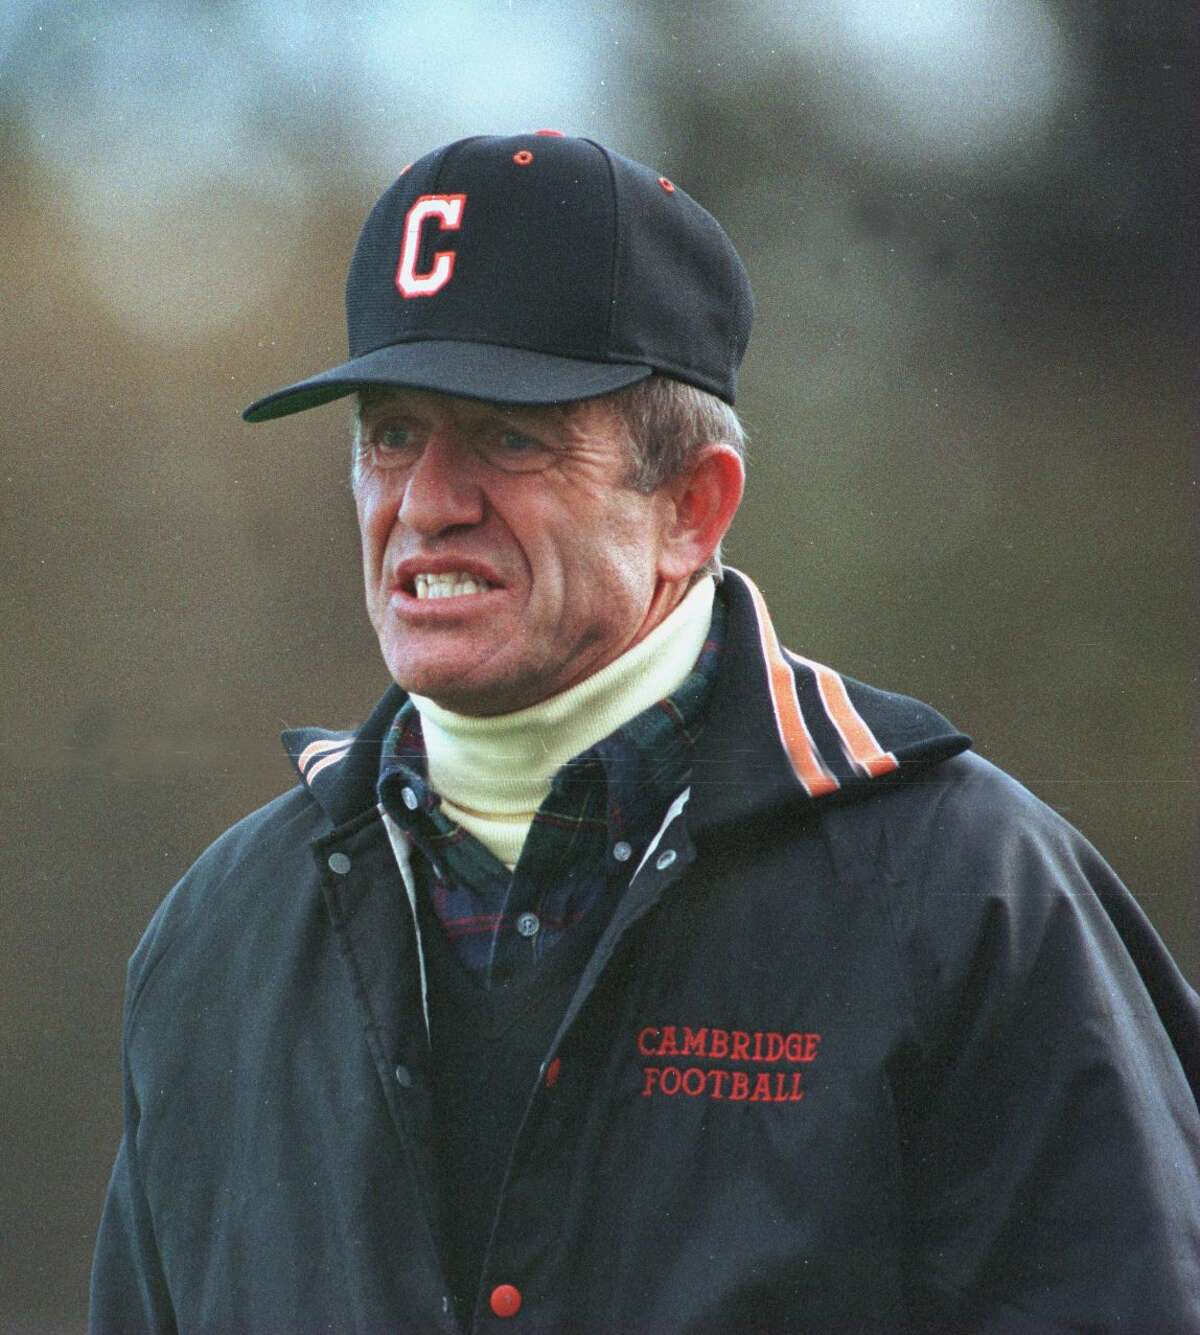 Times Union Staff Photo by LUANNE M. FERRIS. NOVEMBER 4, 1995. CAMBRIDGE FOOTBALL COACH KEN BAKER AT SECTION II CLASS C CHAMPIONSHIP.